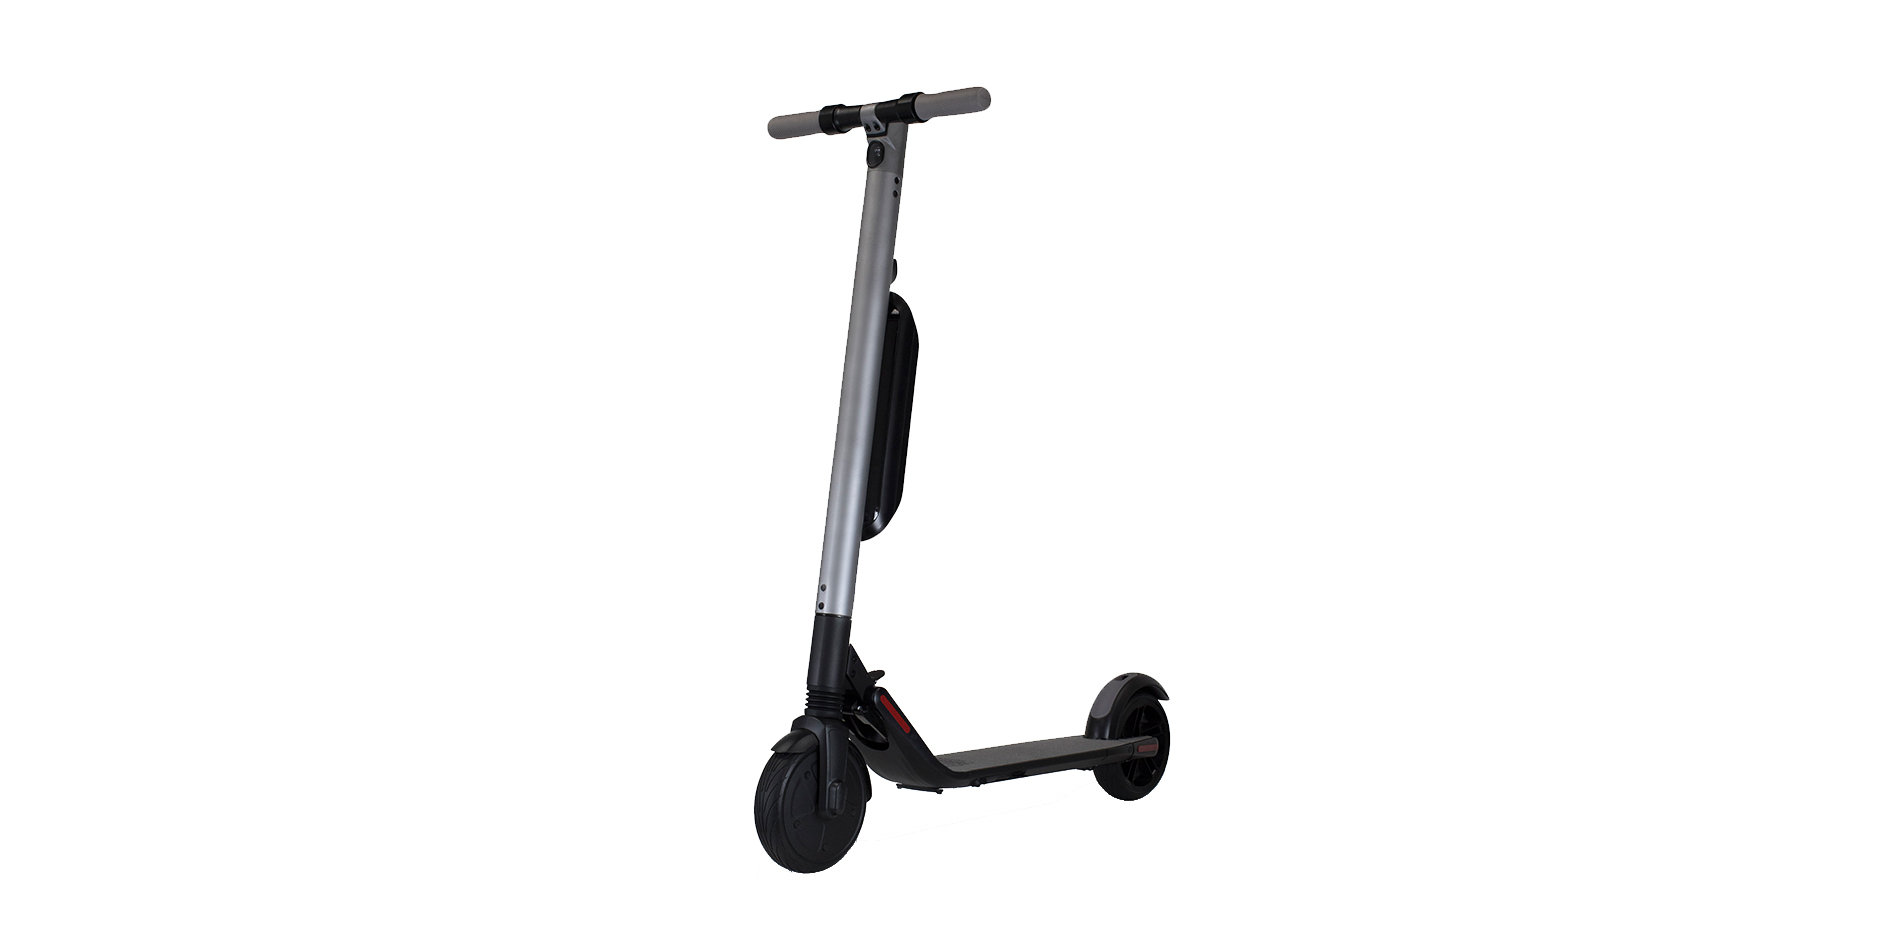 Green Deals: Segway ES4 Electric Scooter $649 + $65 gift card, more